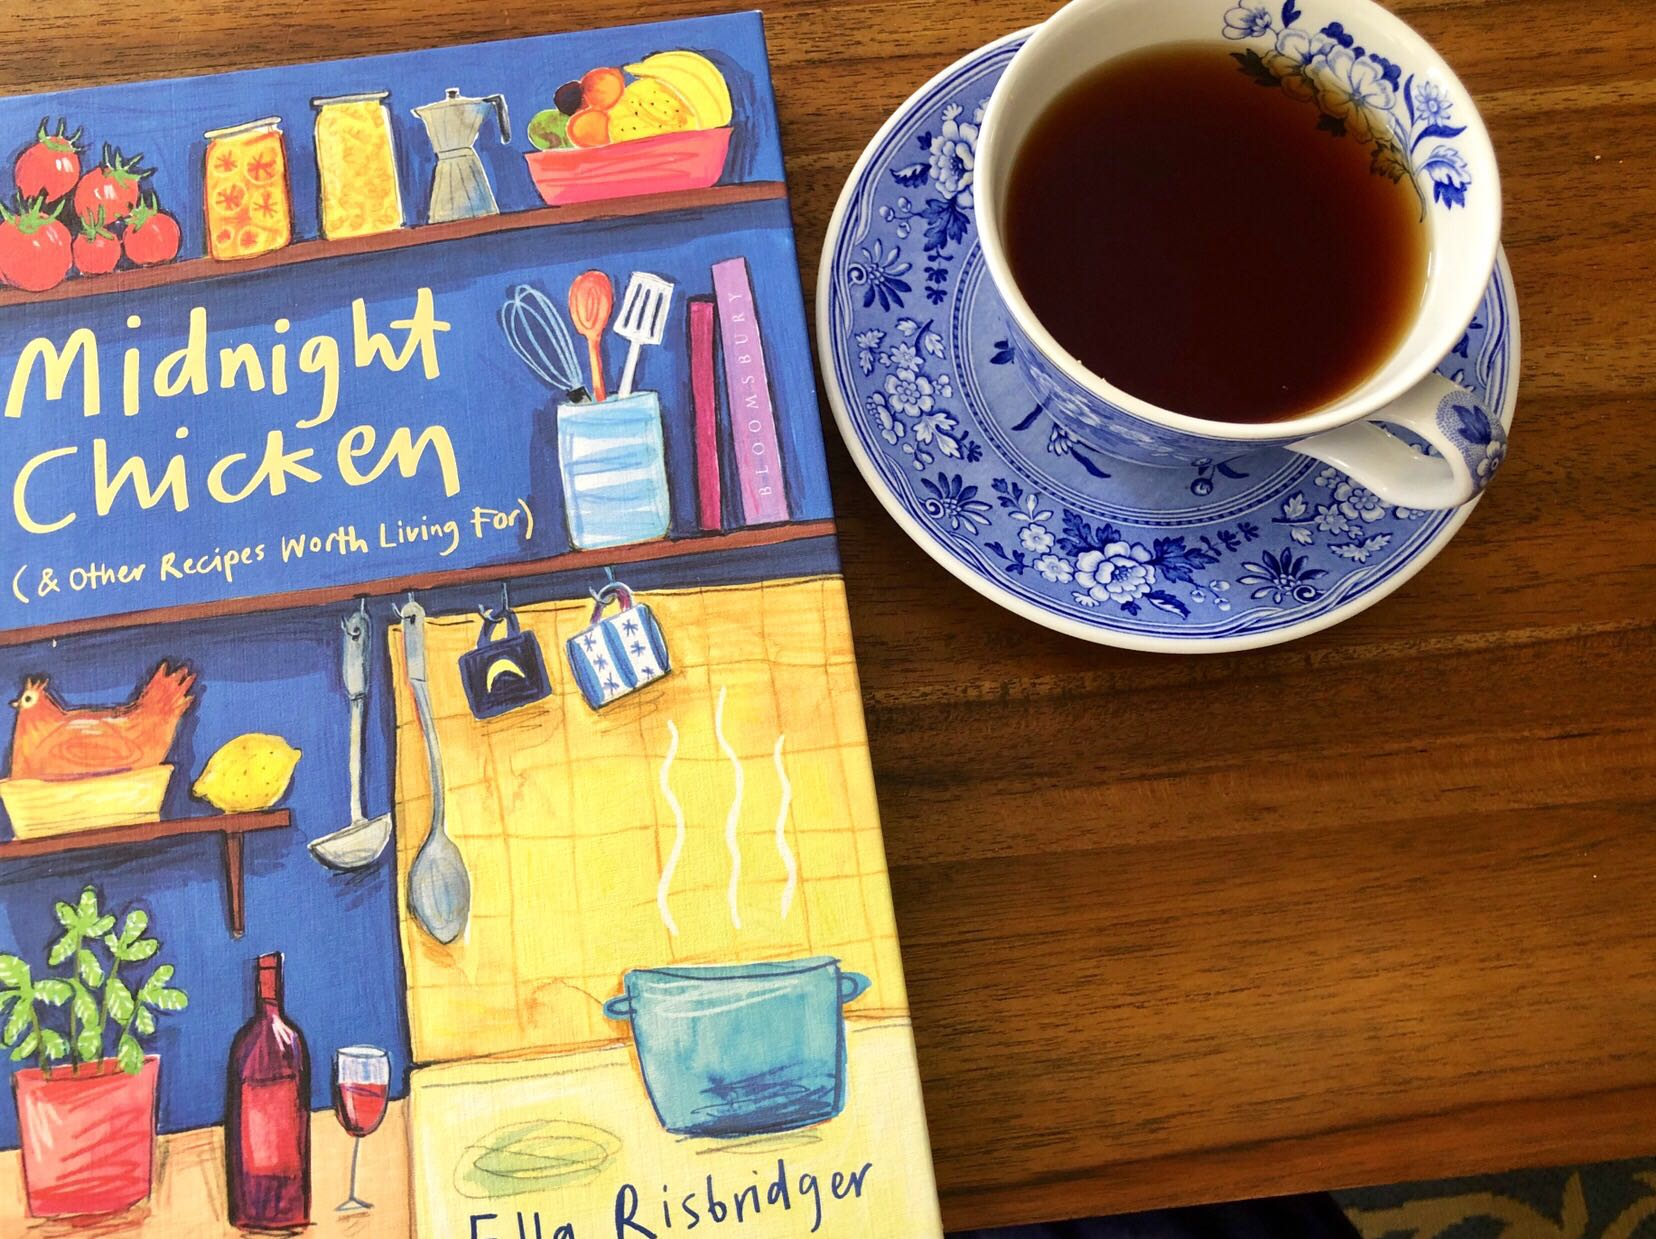 Midnight Chicken (& Other Recipes Worth Living For) by Ella Risbridger